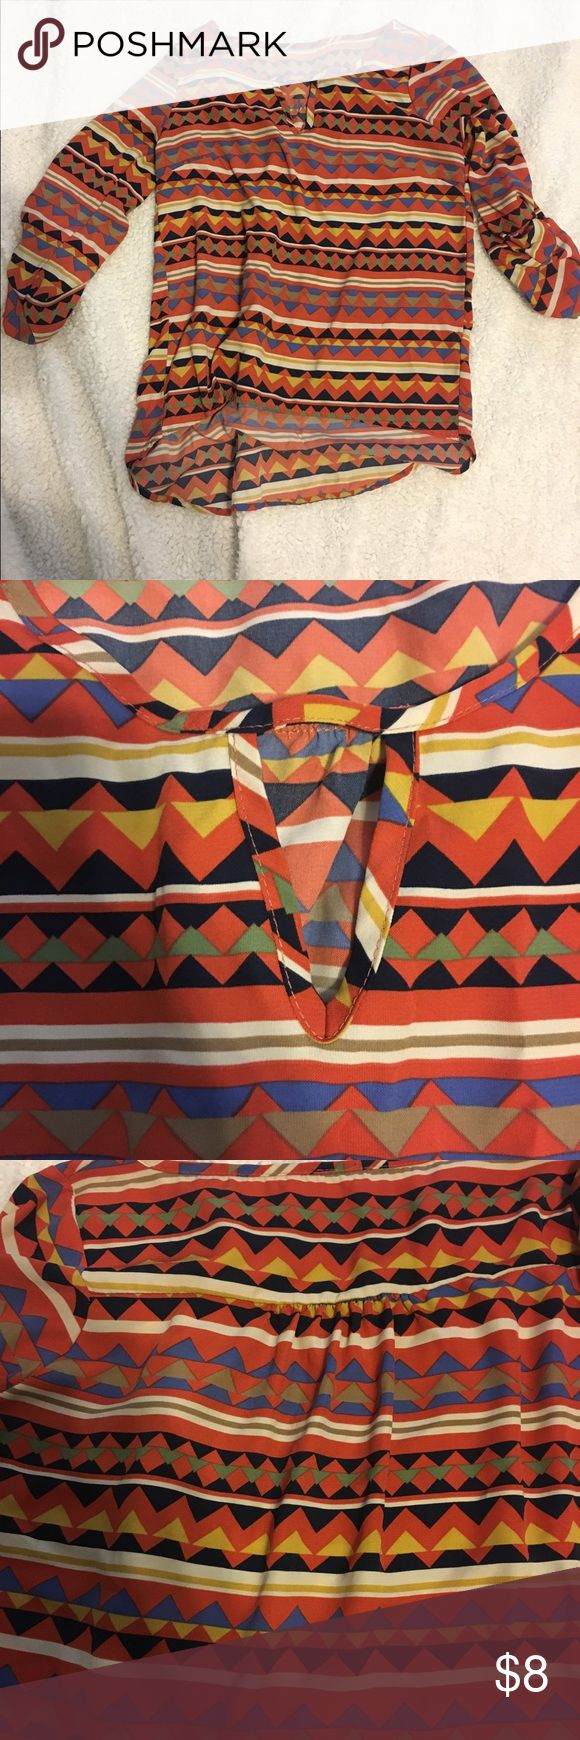 Aztec Blouse Burnt orange Aztec Blouse with Keyhole. Only worn a few times so it is in excellent condition Tops Blouses